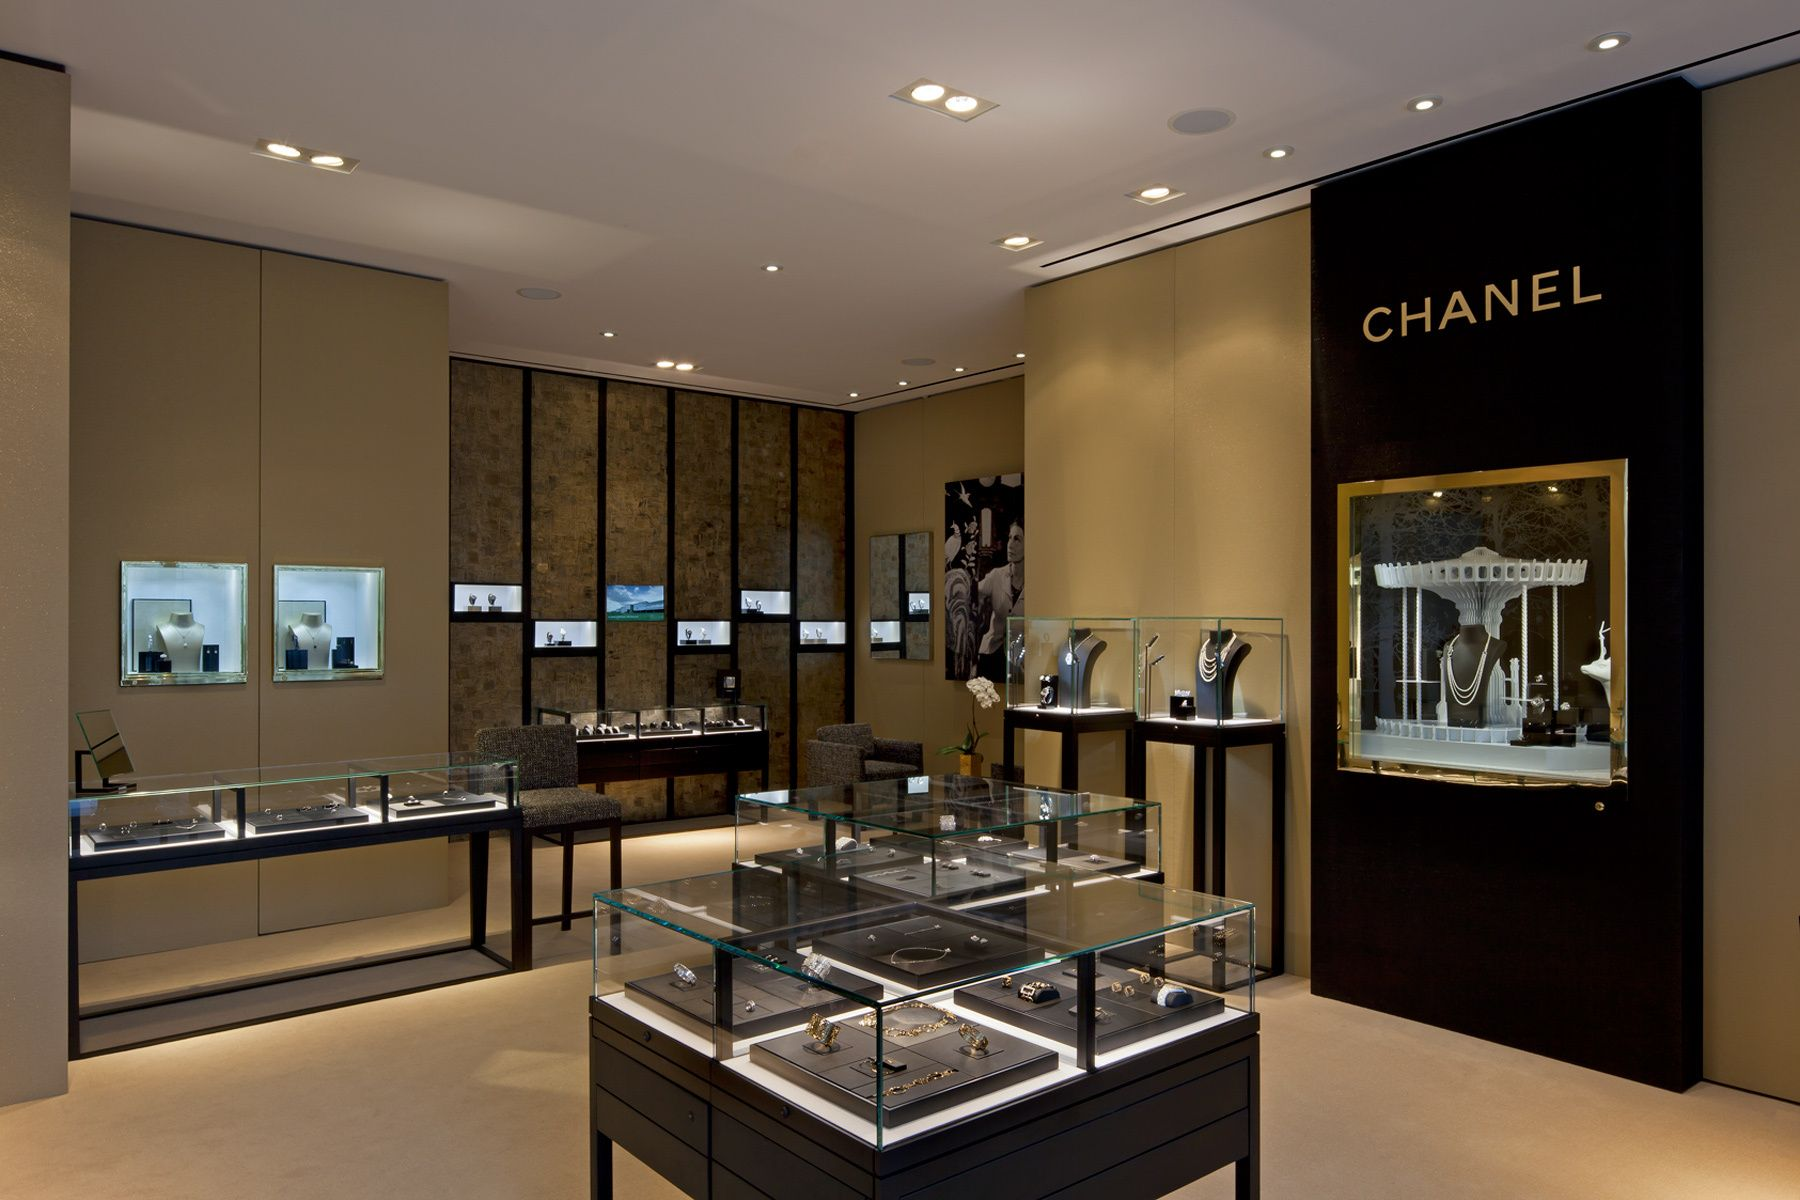 Pin By Li Yunbo On Chanel In 2019 Jewelry Store Displays